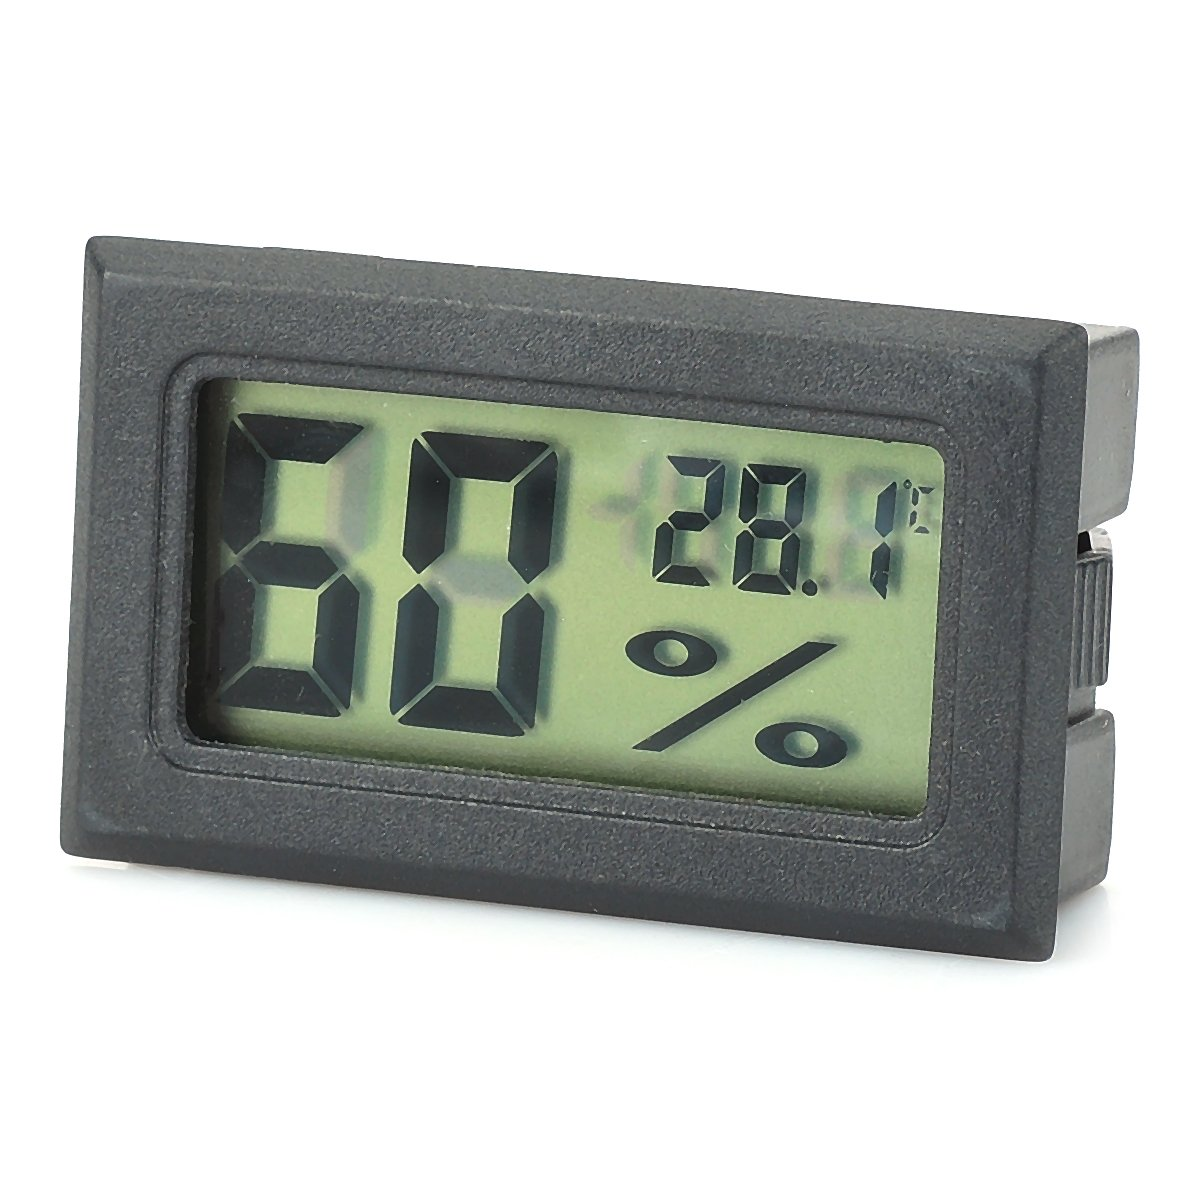 """OLSUS Digital Temperature Humidity 1.5"""" LCD Thermometer Hygrometer Degree Display for Home"""